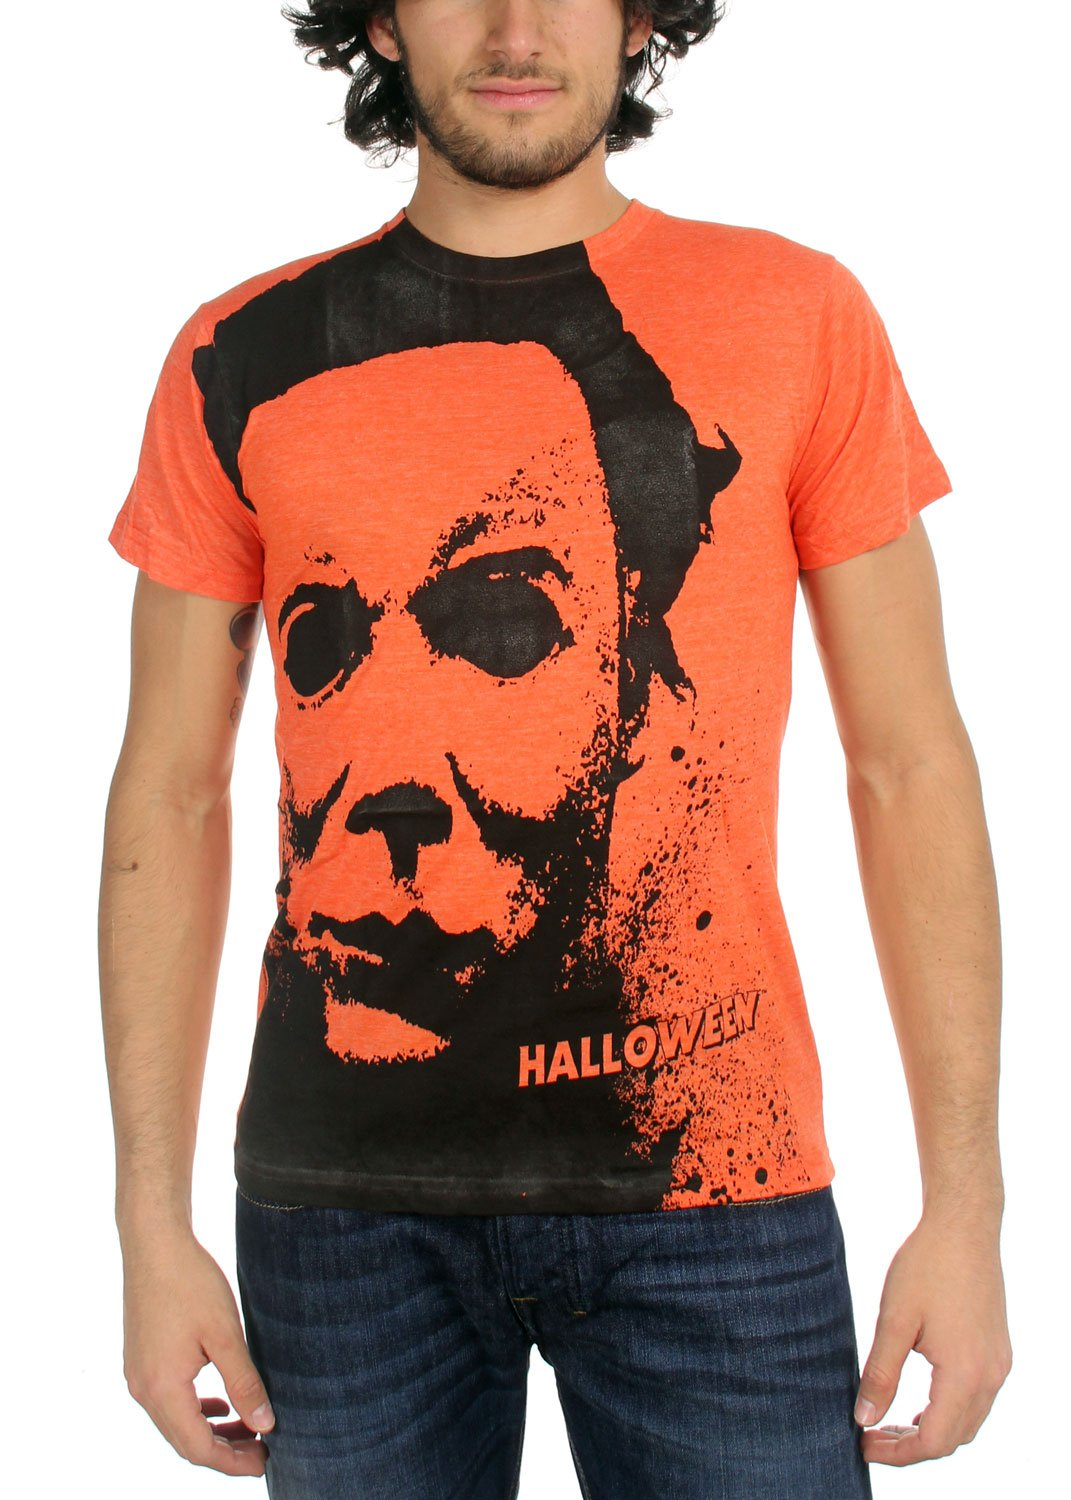 Halloween - Splatter Mask (Slim Fit) T-Shirt Size L